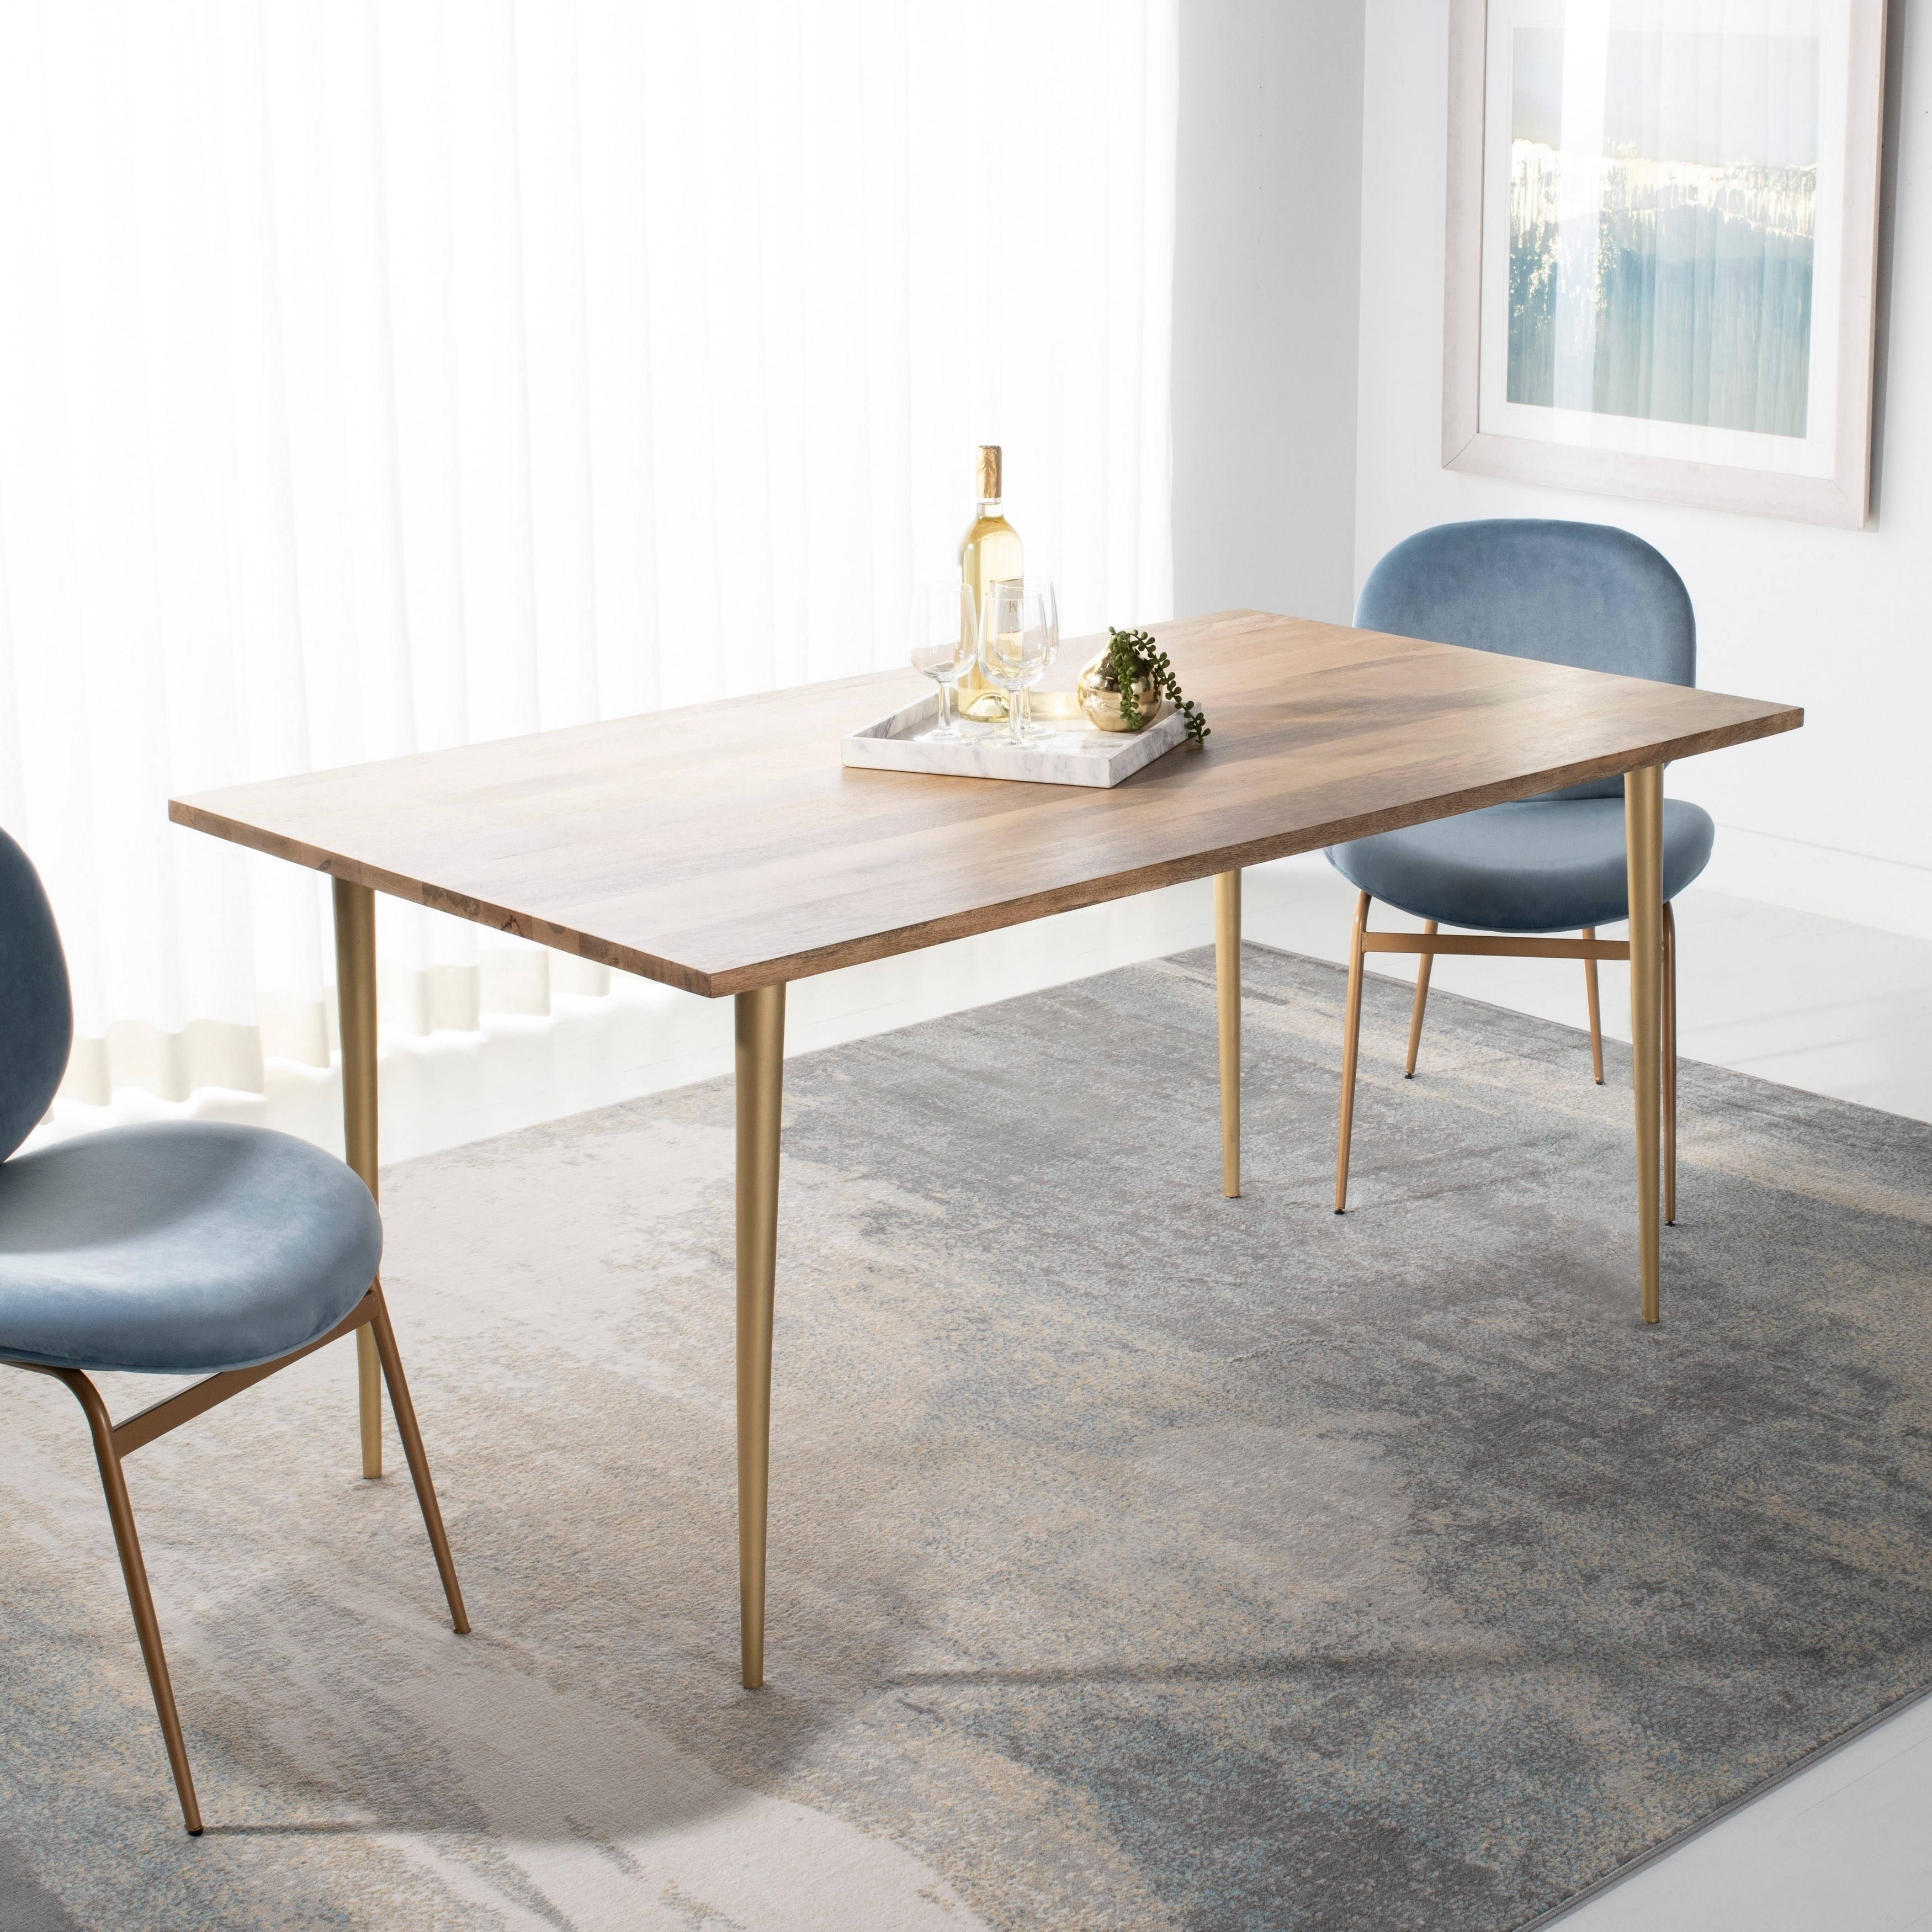 Safavieh Couture Stanley Wood Dining Table Natural Brass